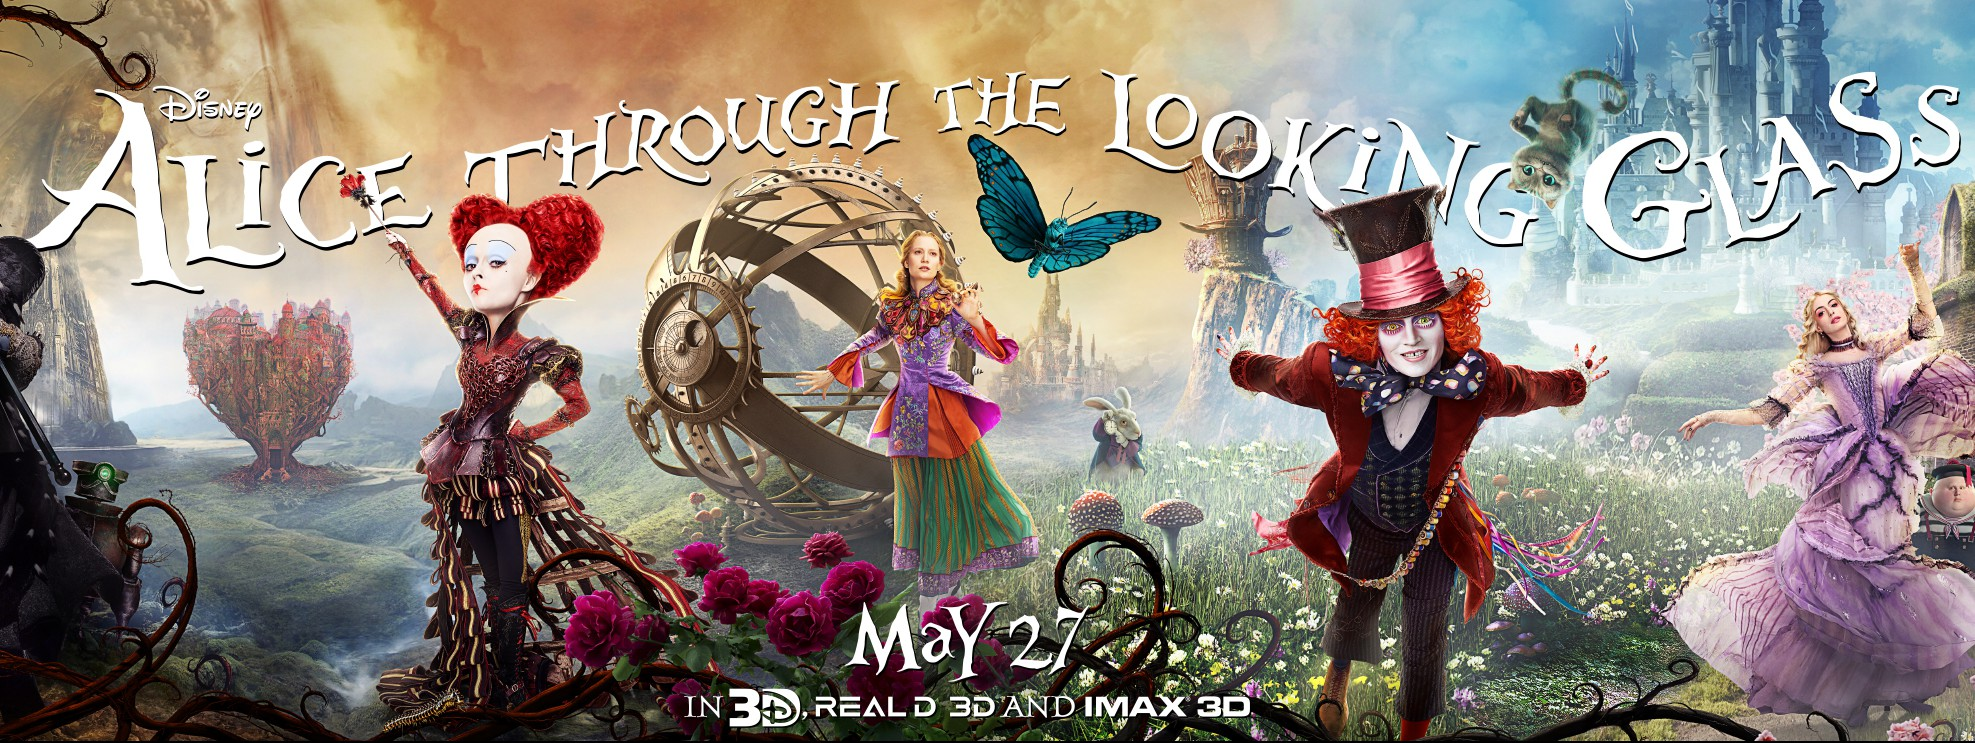 New Trailer for Alice Through the Looking Glass